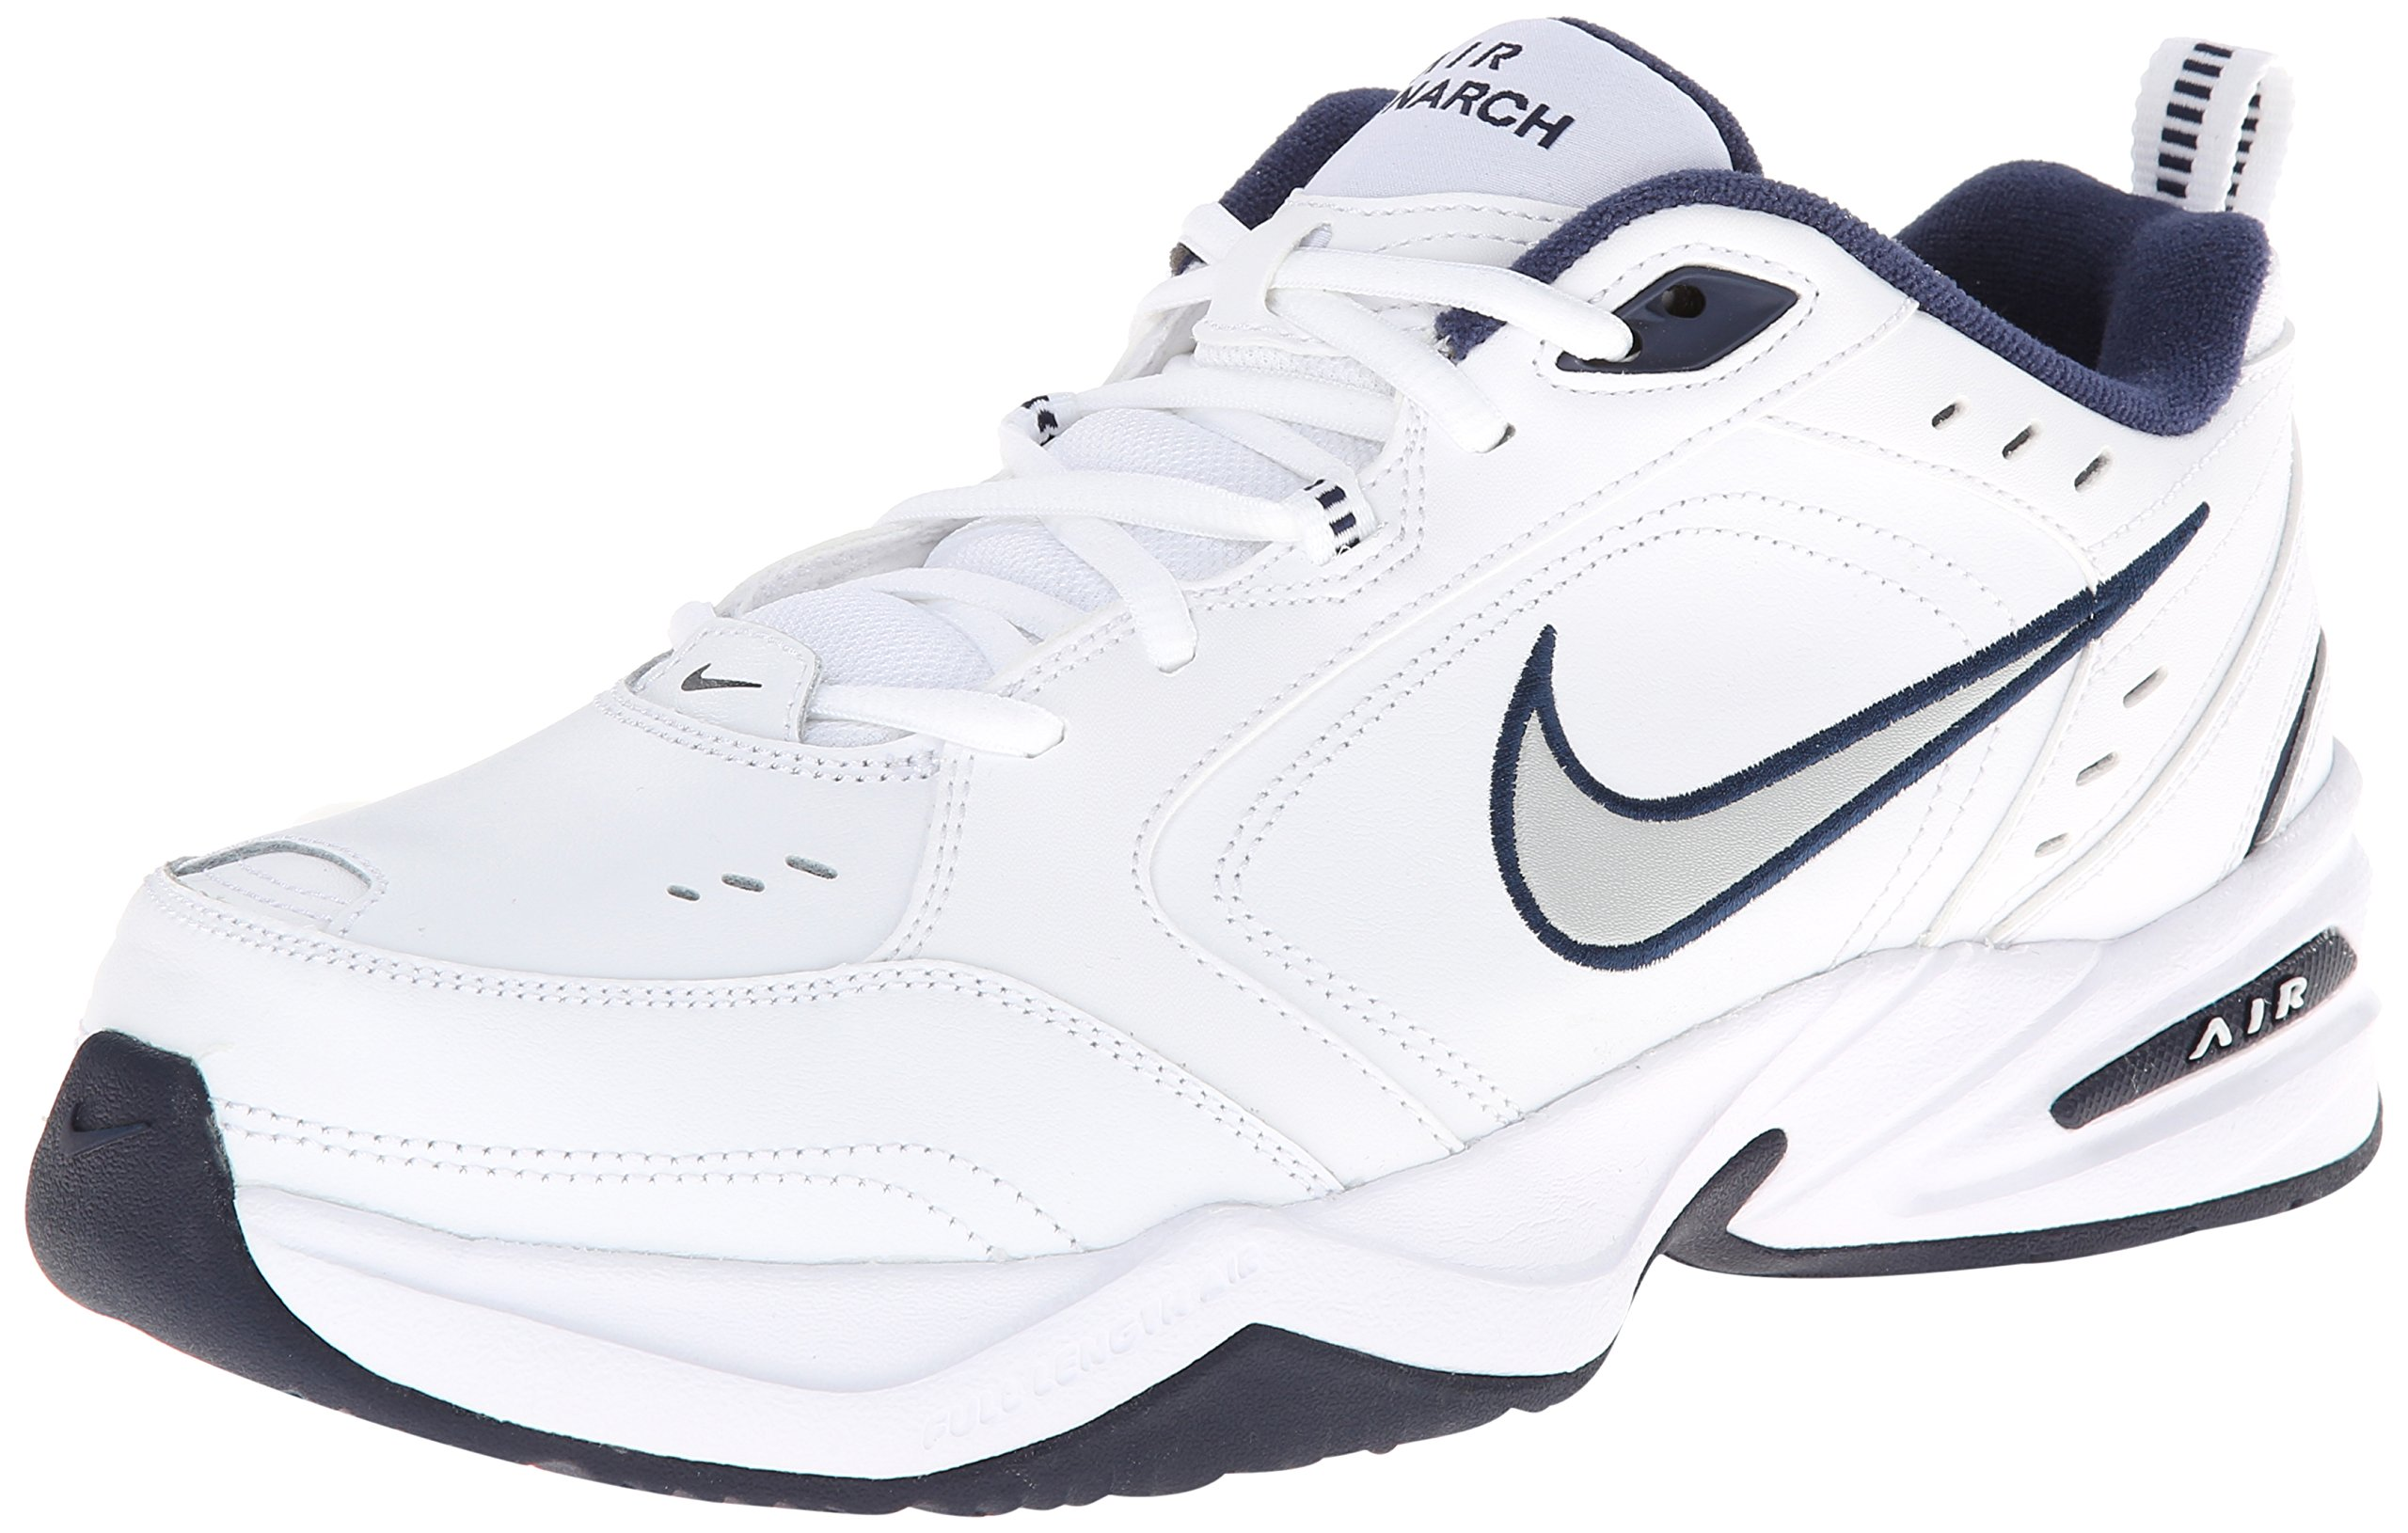 Nike Men's Air Monarch IV Cross Trainer White/Metallic Silver/Midnight Navy 10.5 Regular US